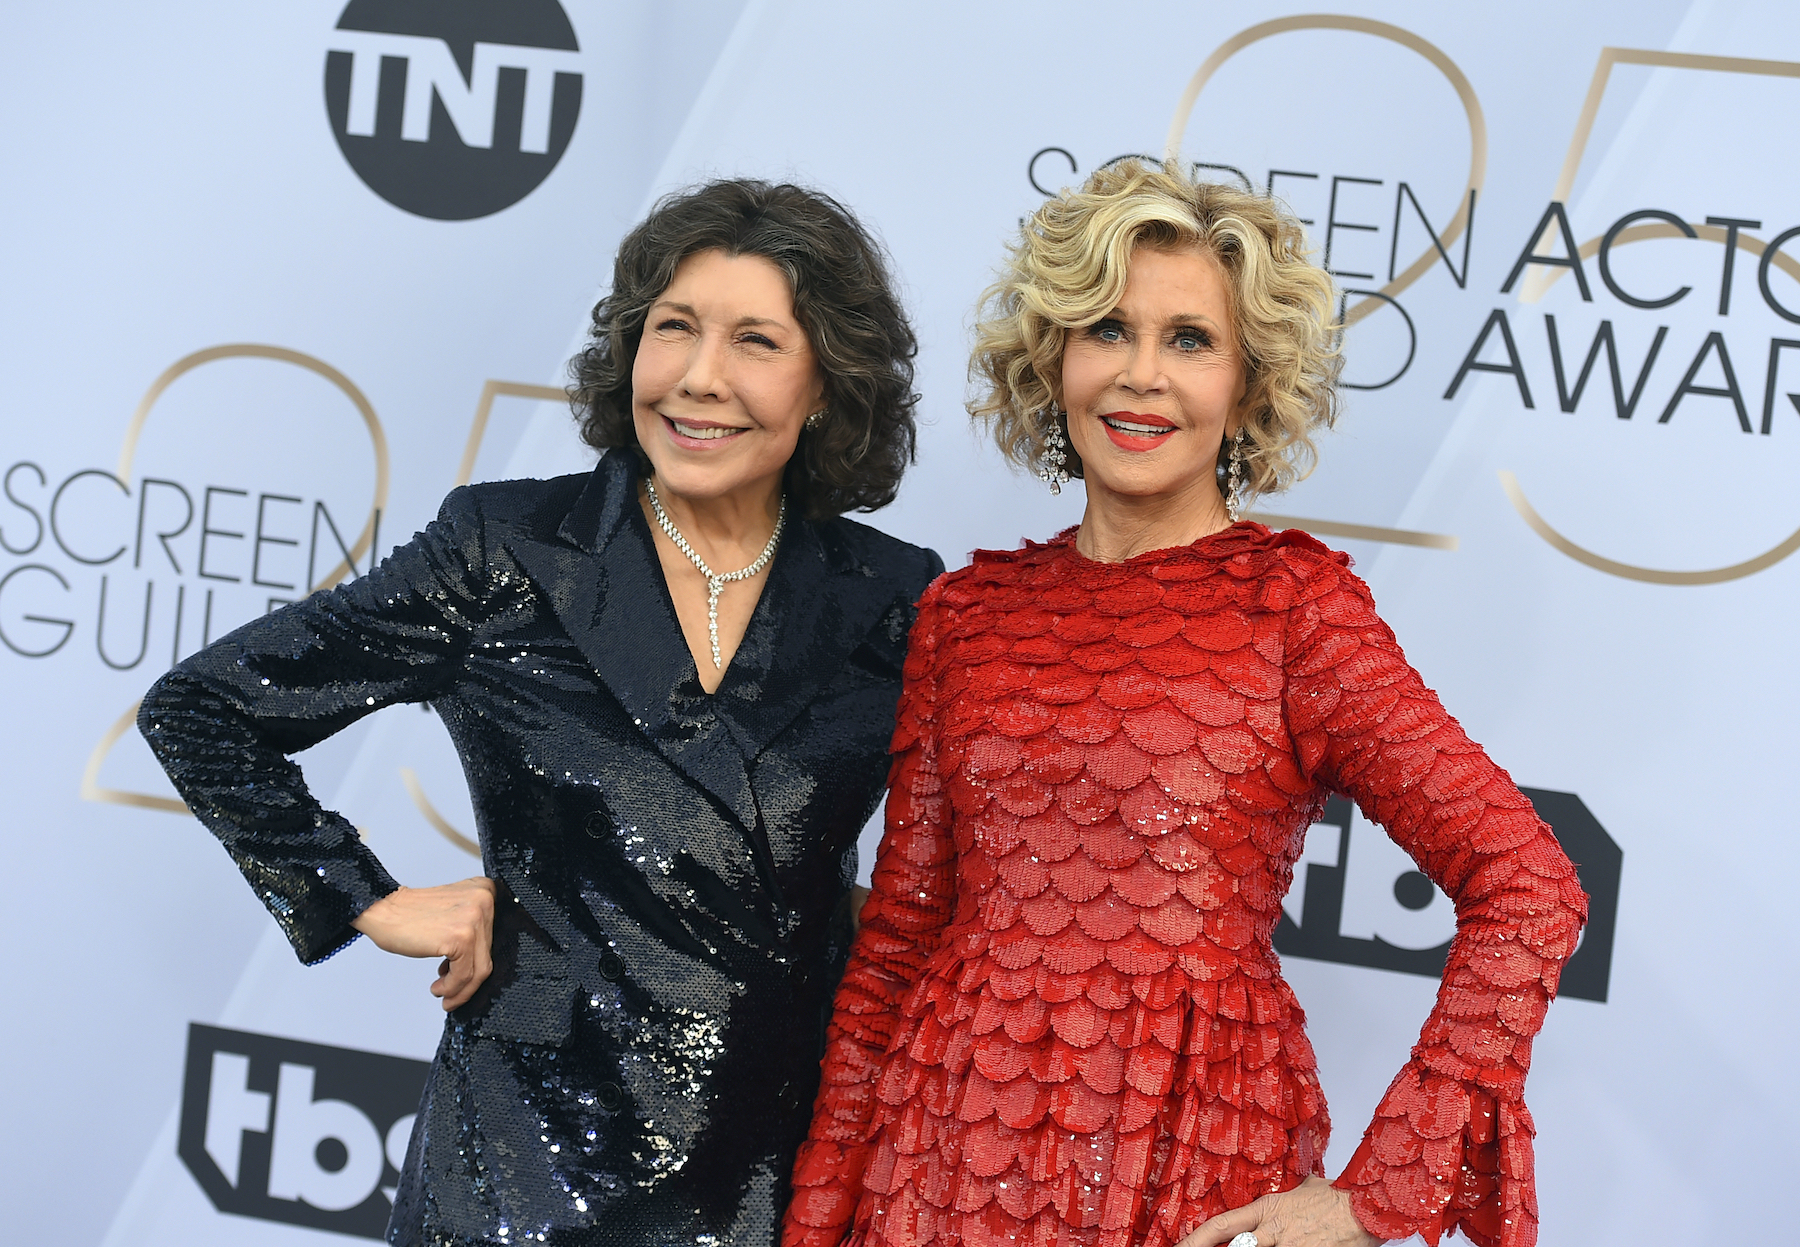 <div class='meta'><div class='origin-logo' data-origin='AP'></div><span class='caption-text' data-credit='Jordan Strauss/Invision/AP'>Lily Tomlin, left, and Jane Fonda arrive at the 25th annual Screen Actors Guild Awards at the Shrine Auditorium & Expo Hall on Sunday, Jan. 27, 2019, in Los Angeles.</span></div>